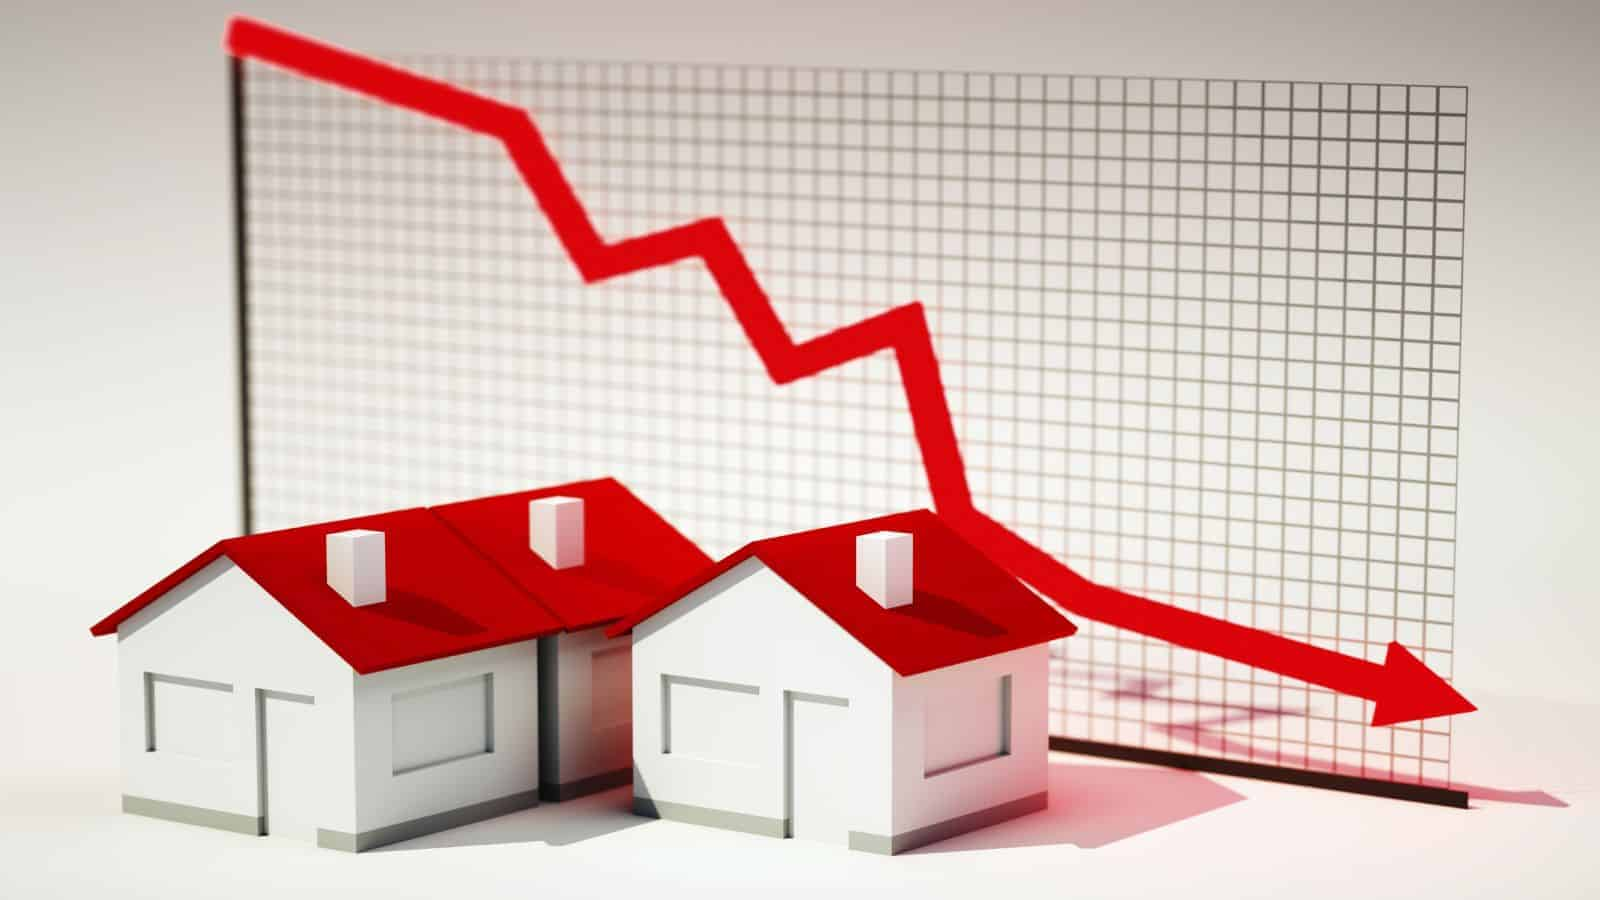 Sold House Prices Australia 2 Reasons Why Australian Property Prices Could Crash This Year